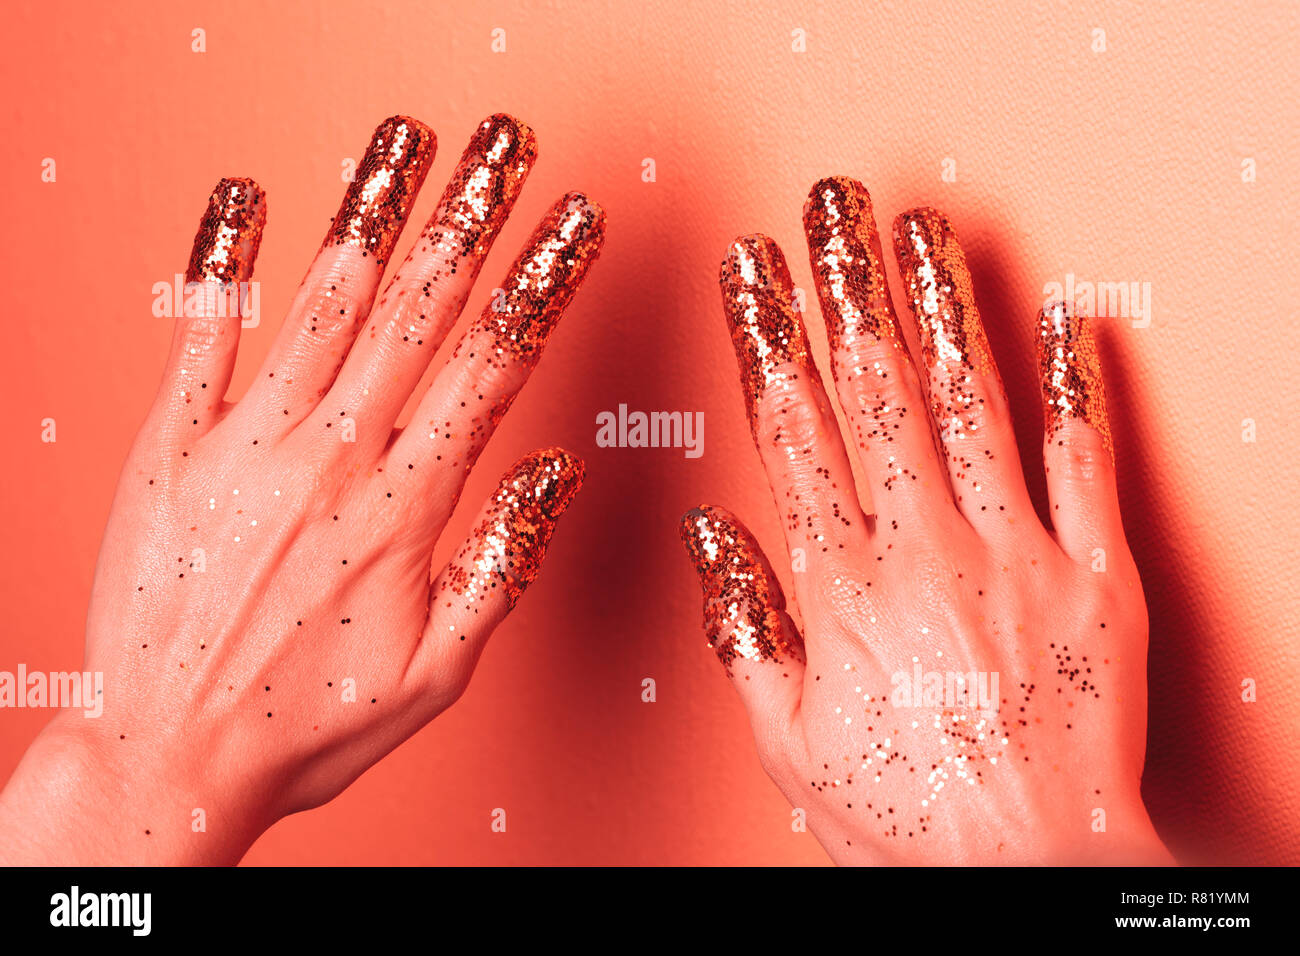 Manicure with glittering fingers. Art fashion inspired by Living Coral - colot of the Year 2019. Stock Photo